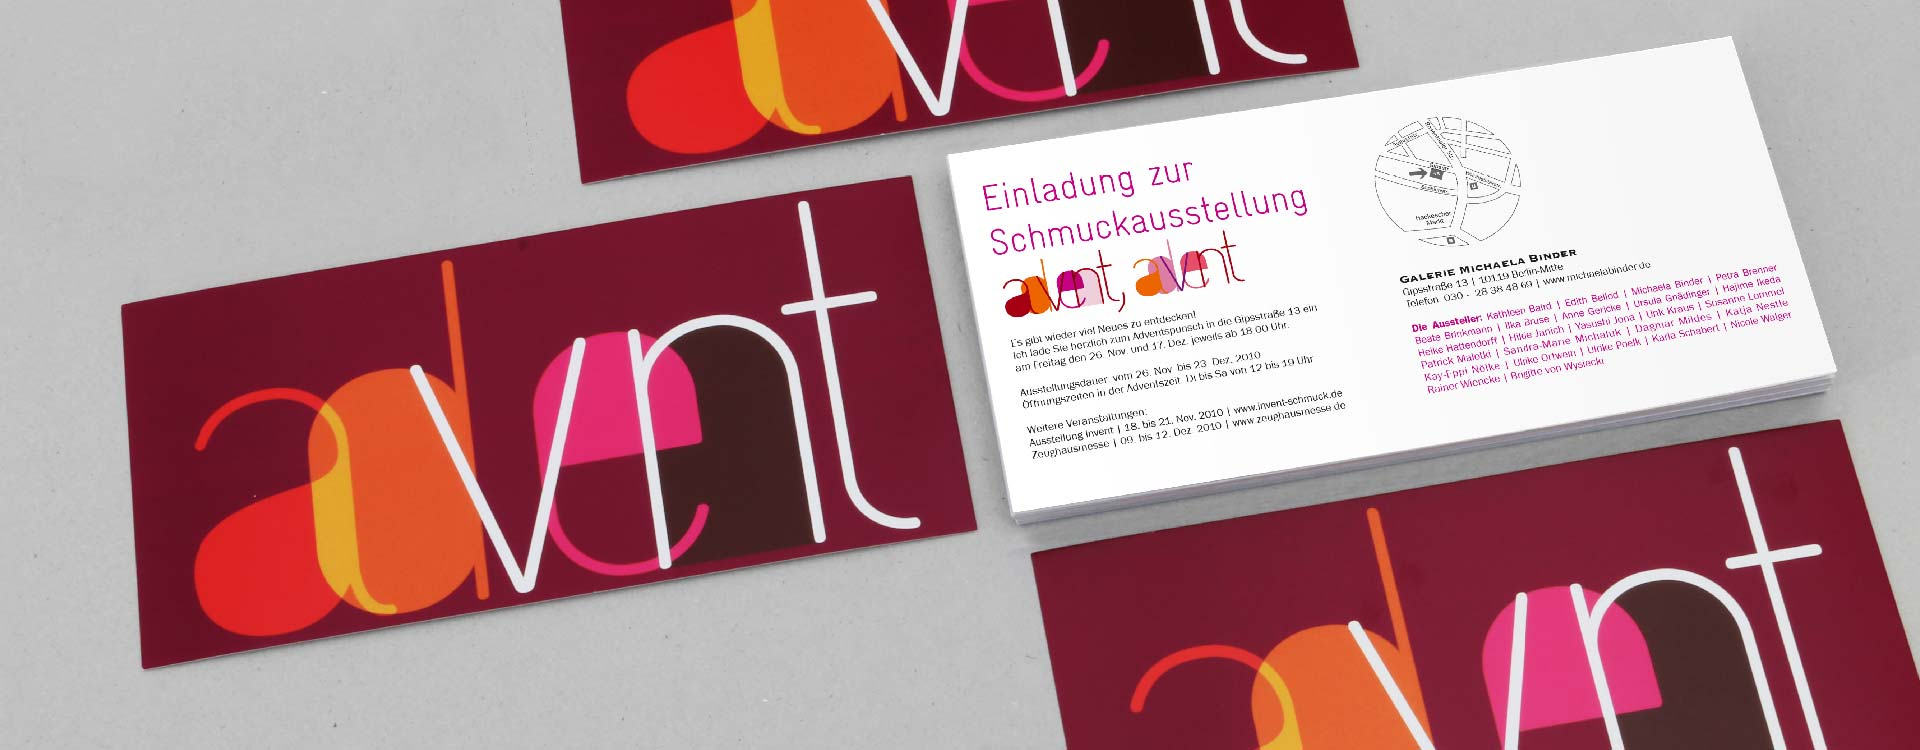 Invitation card for the jewellery exhibition 2010 in the gallery of Michaela Binder, Berlin; Design: Kattrin Richter | Graphic Design Studio